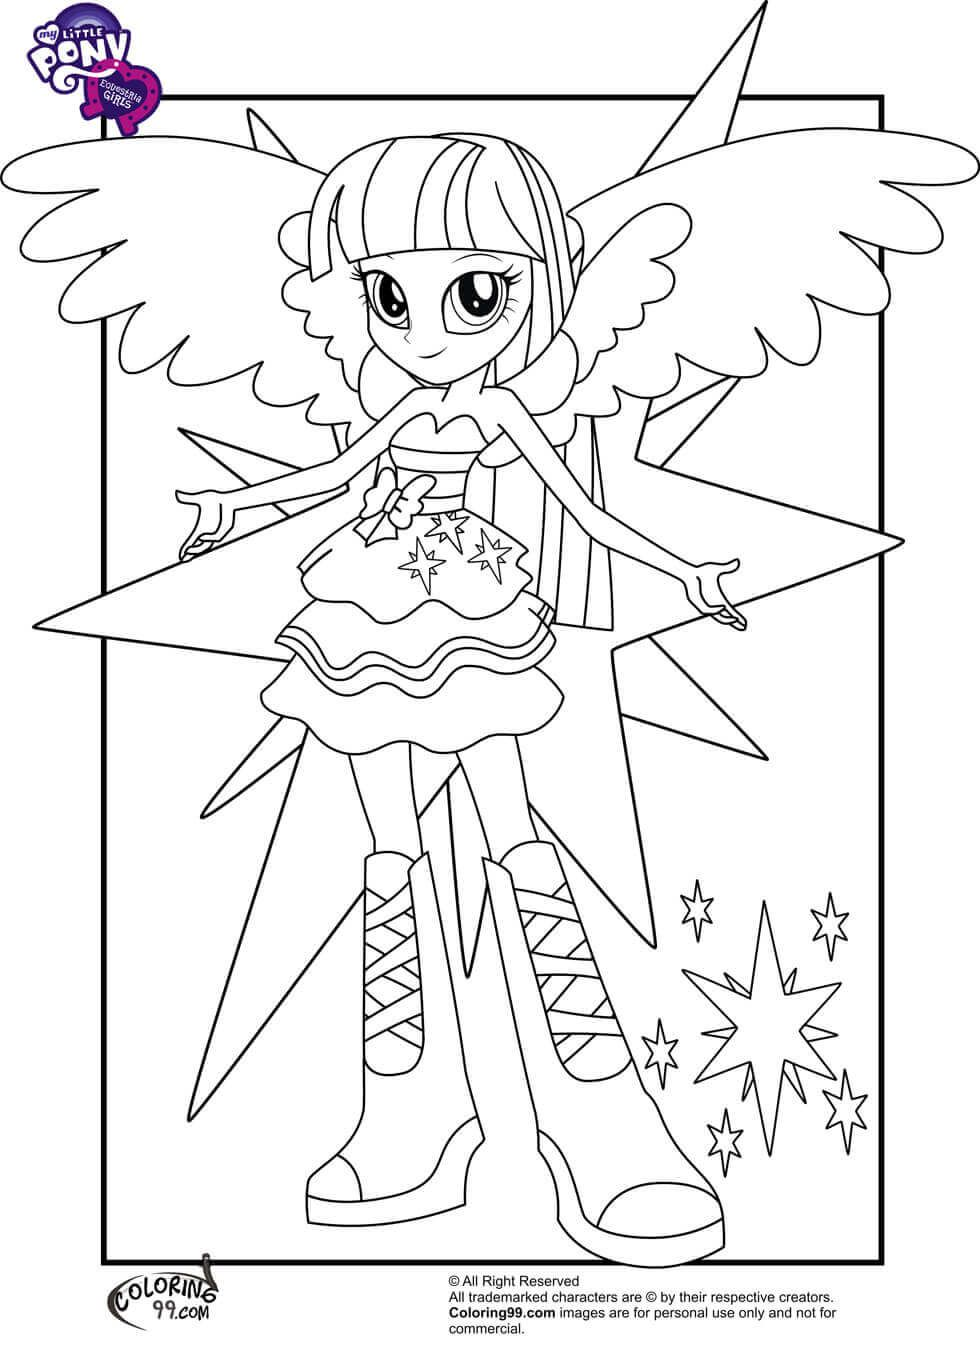 Twilight Sparkle From My Little Pony Equestria Girls Coloring Page My Little Pony Coloring My Little Pony Twilight Twilight Sparkle Equestria Girl